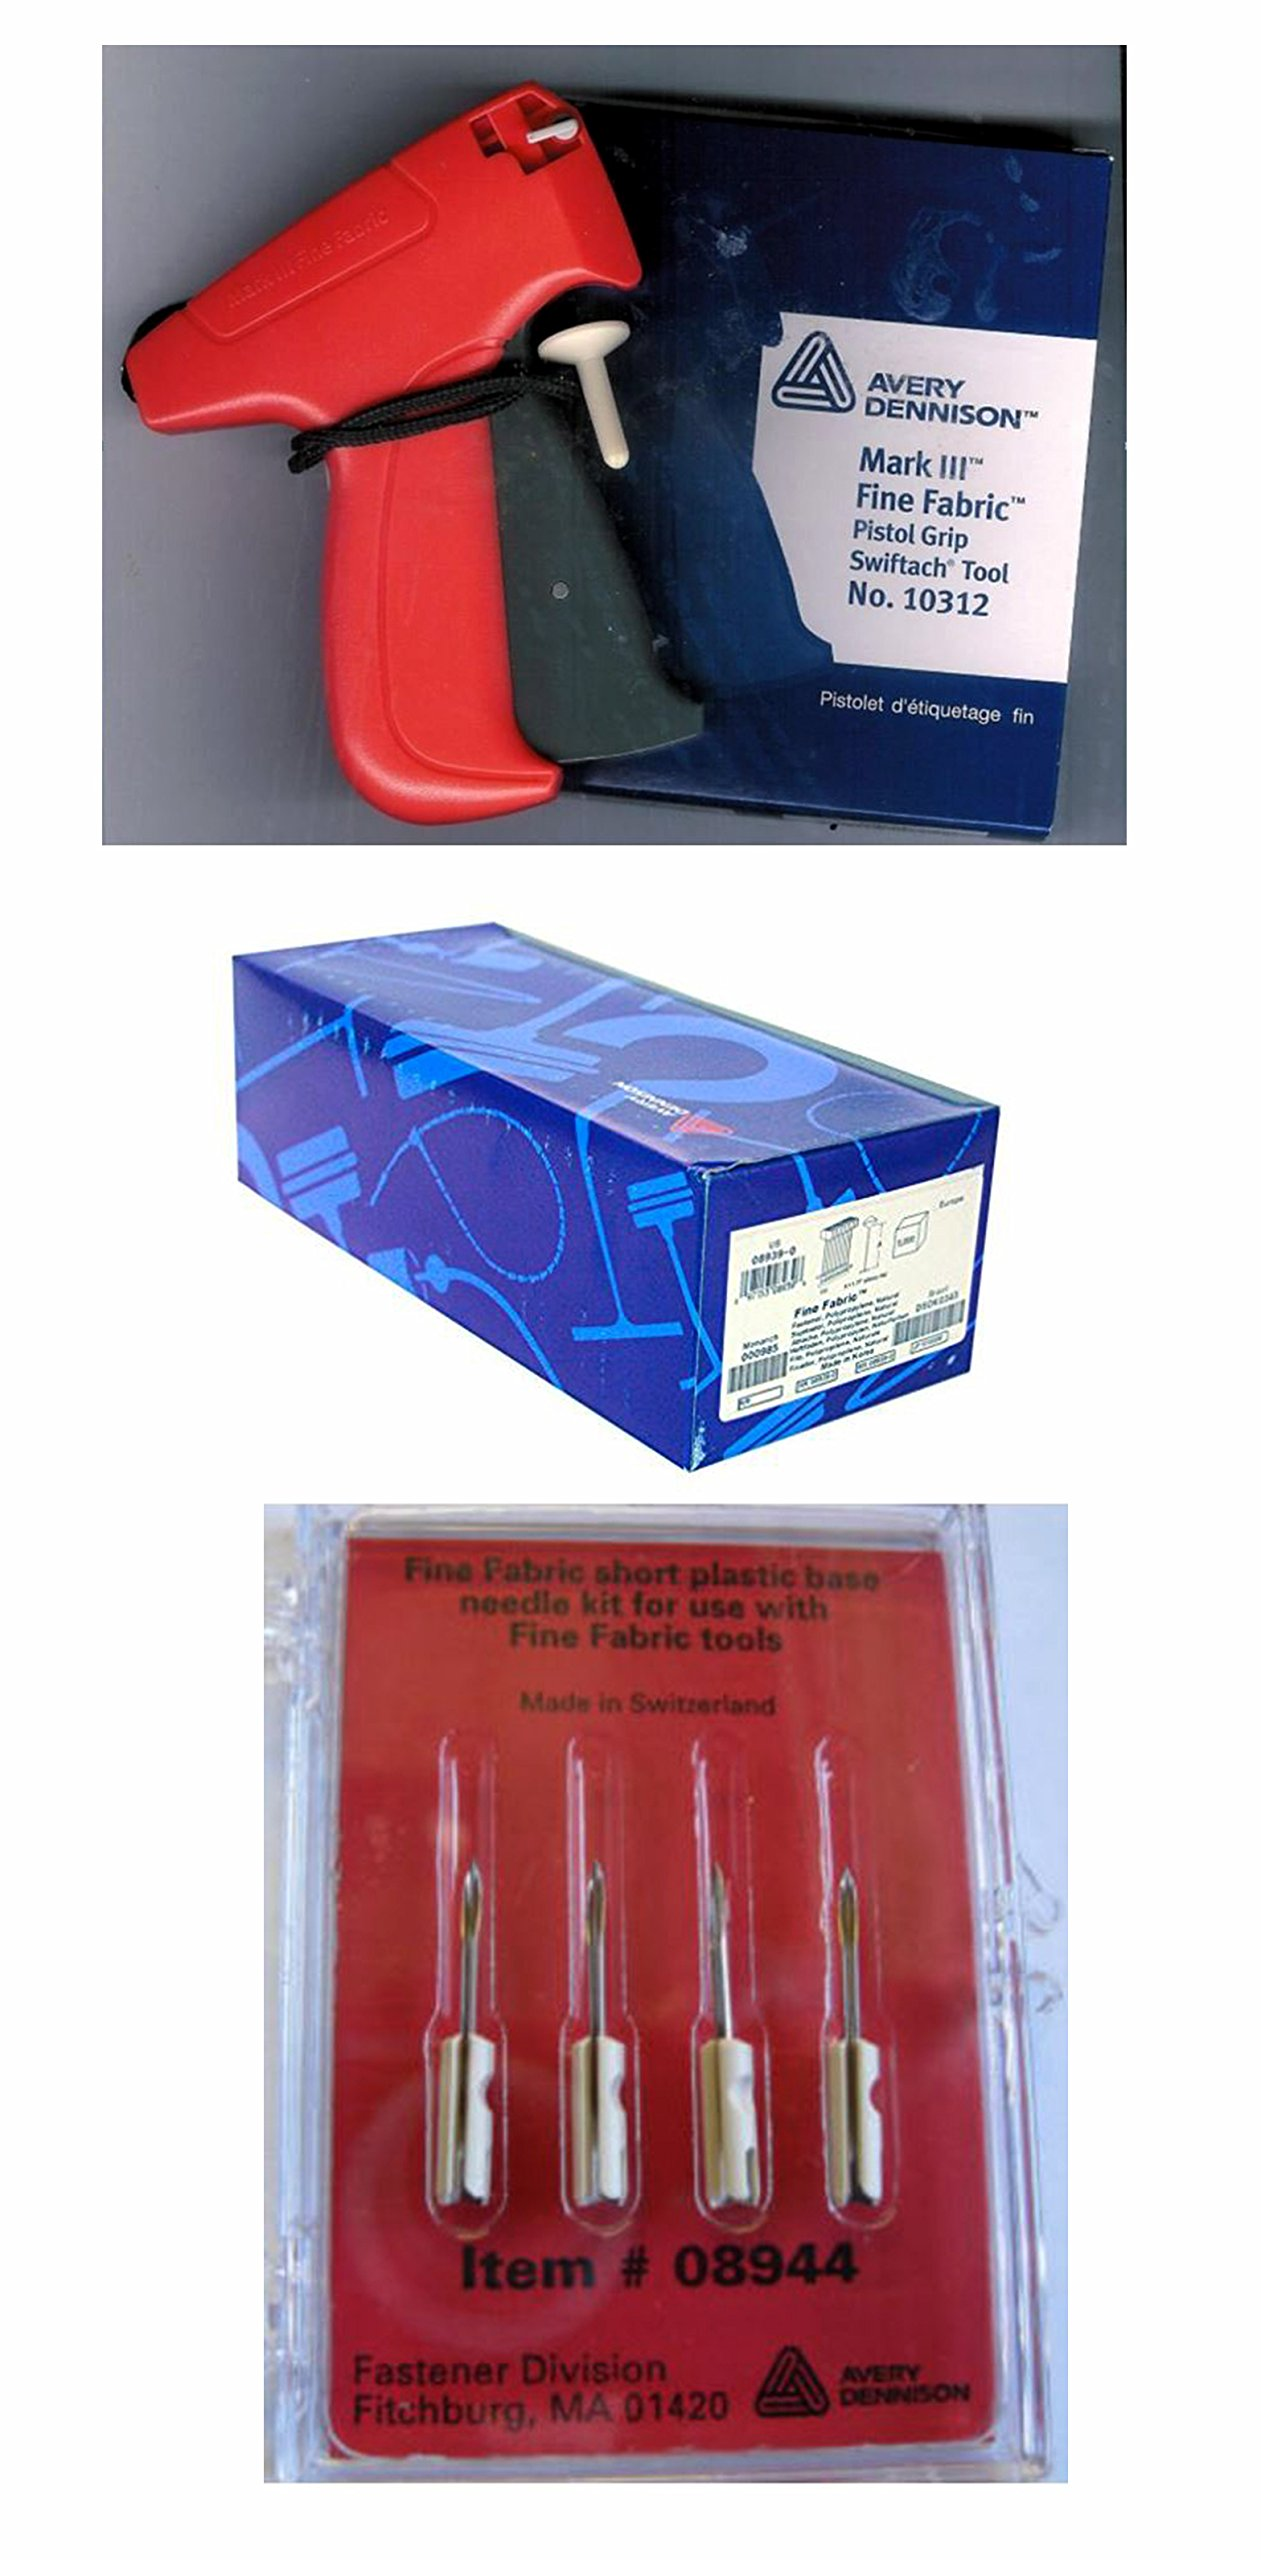 Avery Dennison Mark III 10312 Fine Tagging Gun with 5,000 2'' Avery Dennison Barbs and 4 Avery Dennison Replacement Needles by Avery Dennison